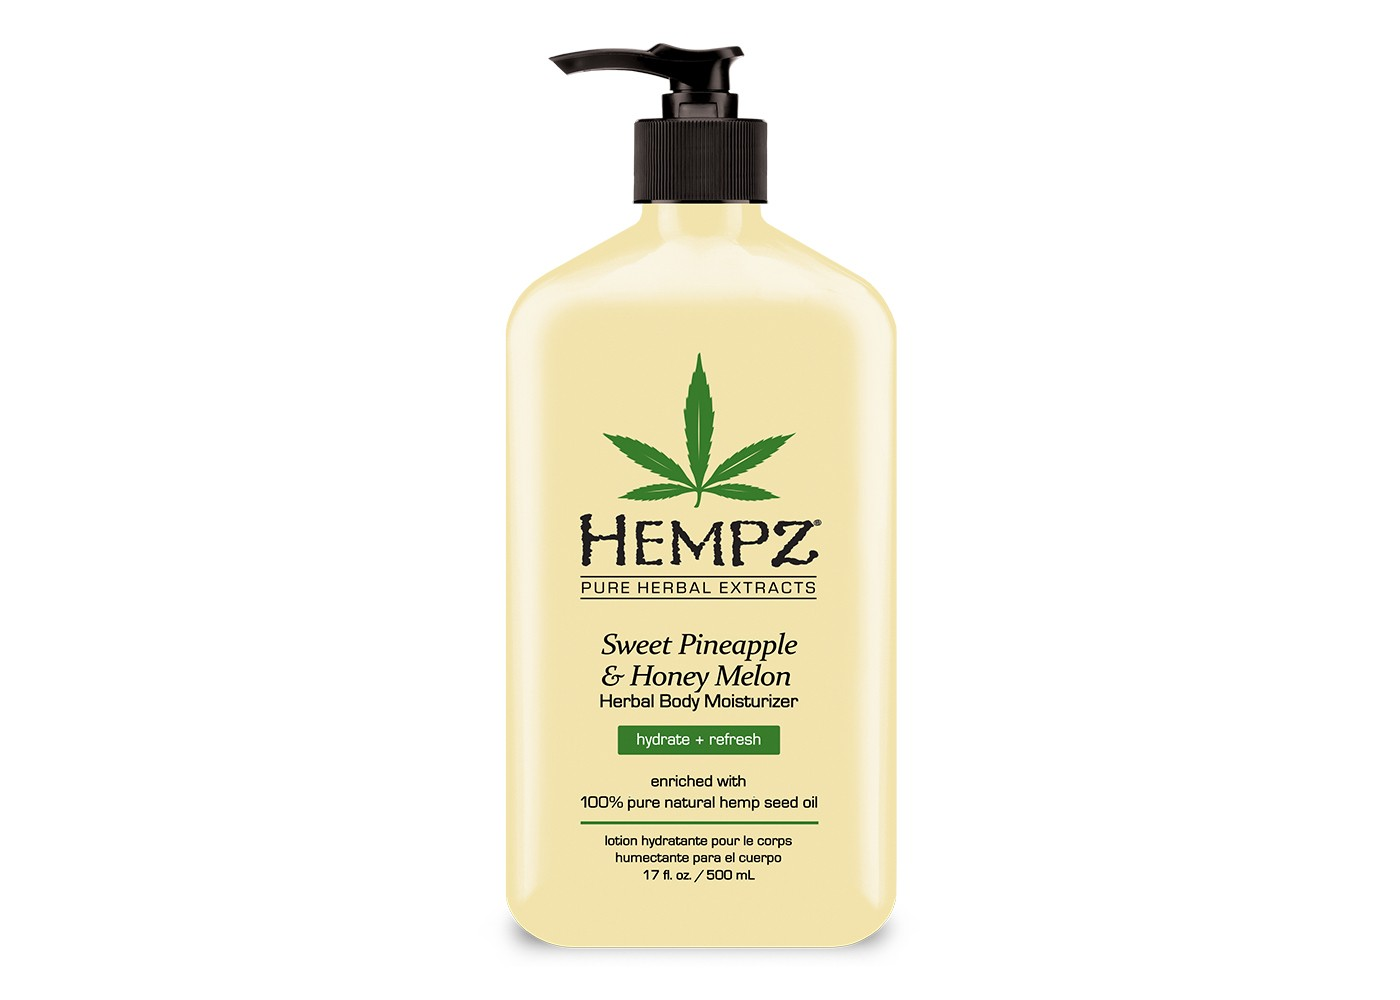 Hempz Herbal Sweet Pineapple And Honey Melon Body Moisturize - 17oz - image 1 of 3